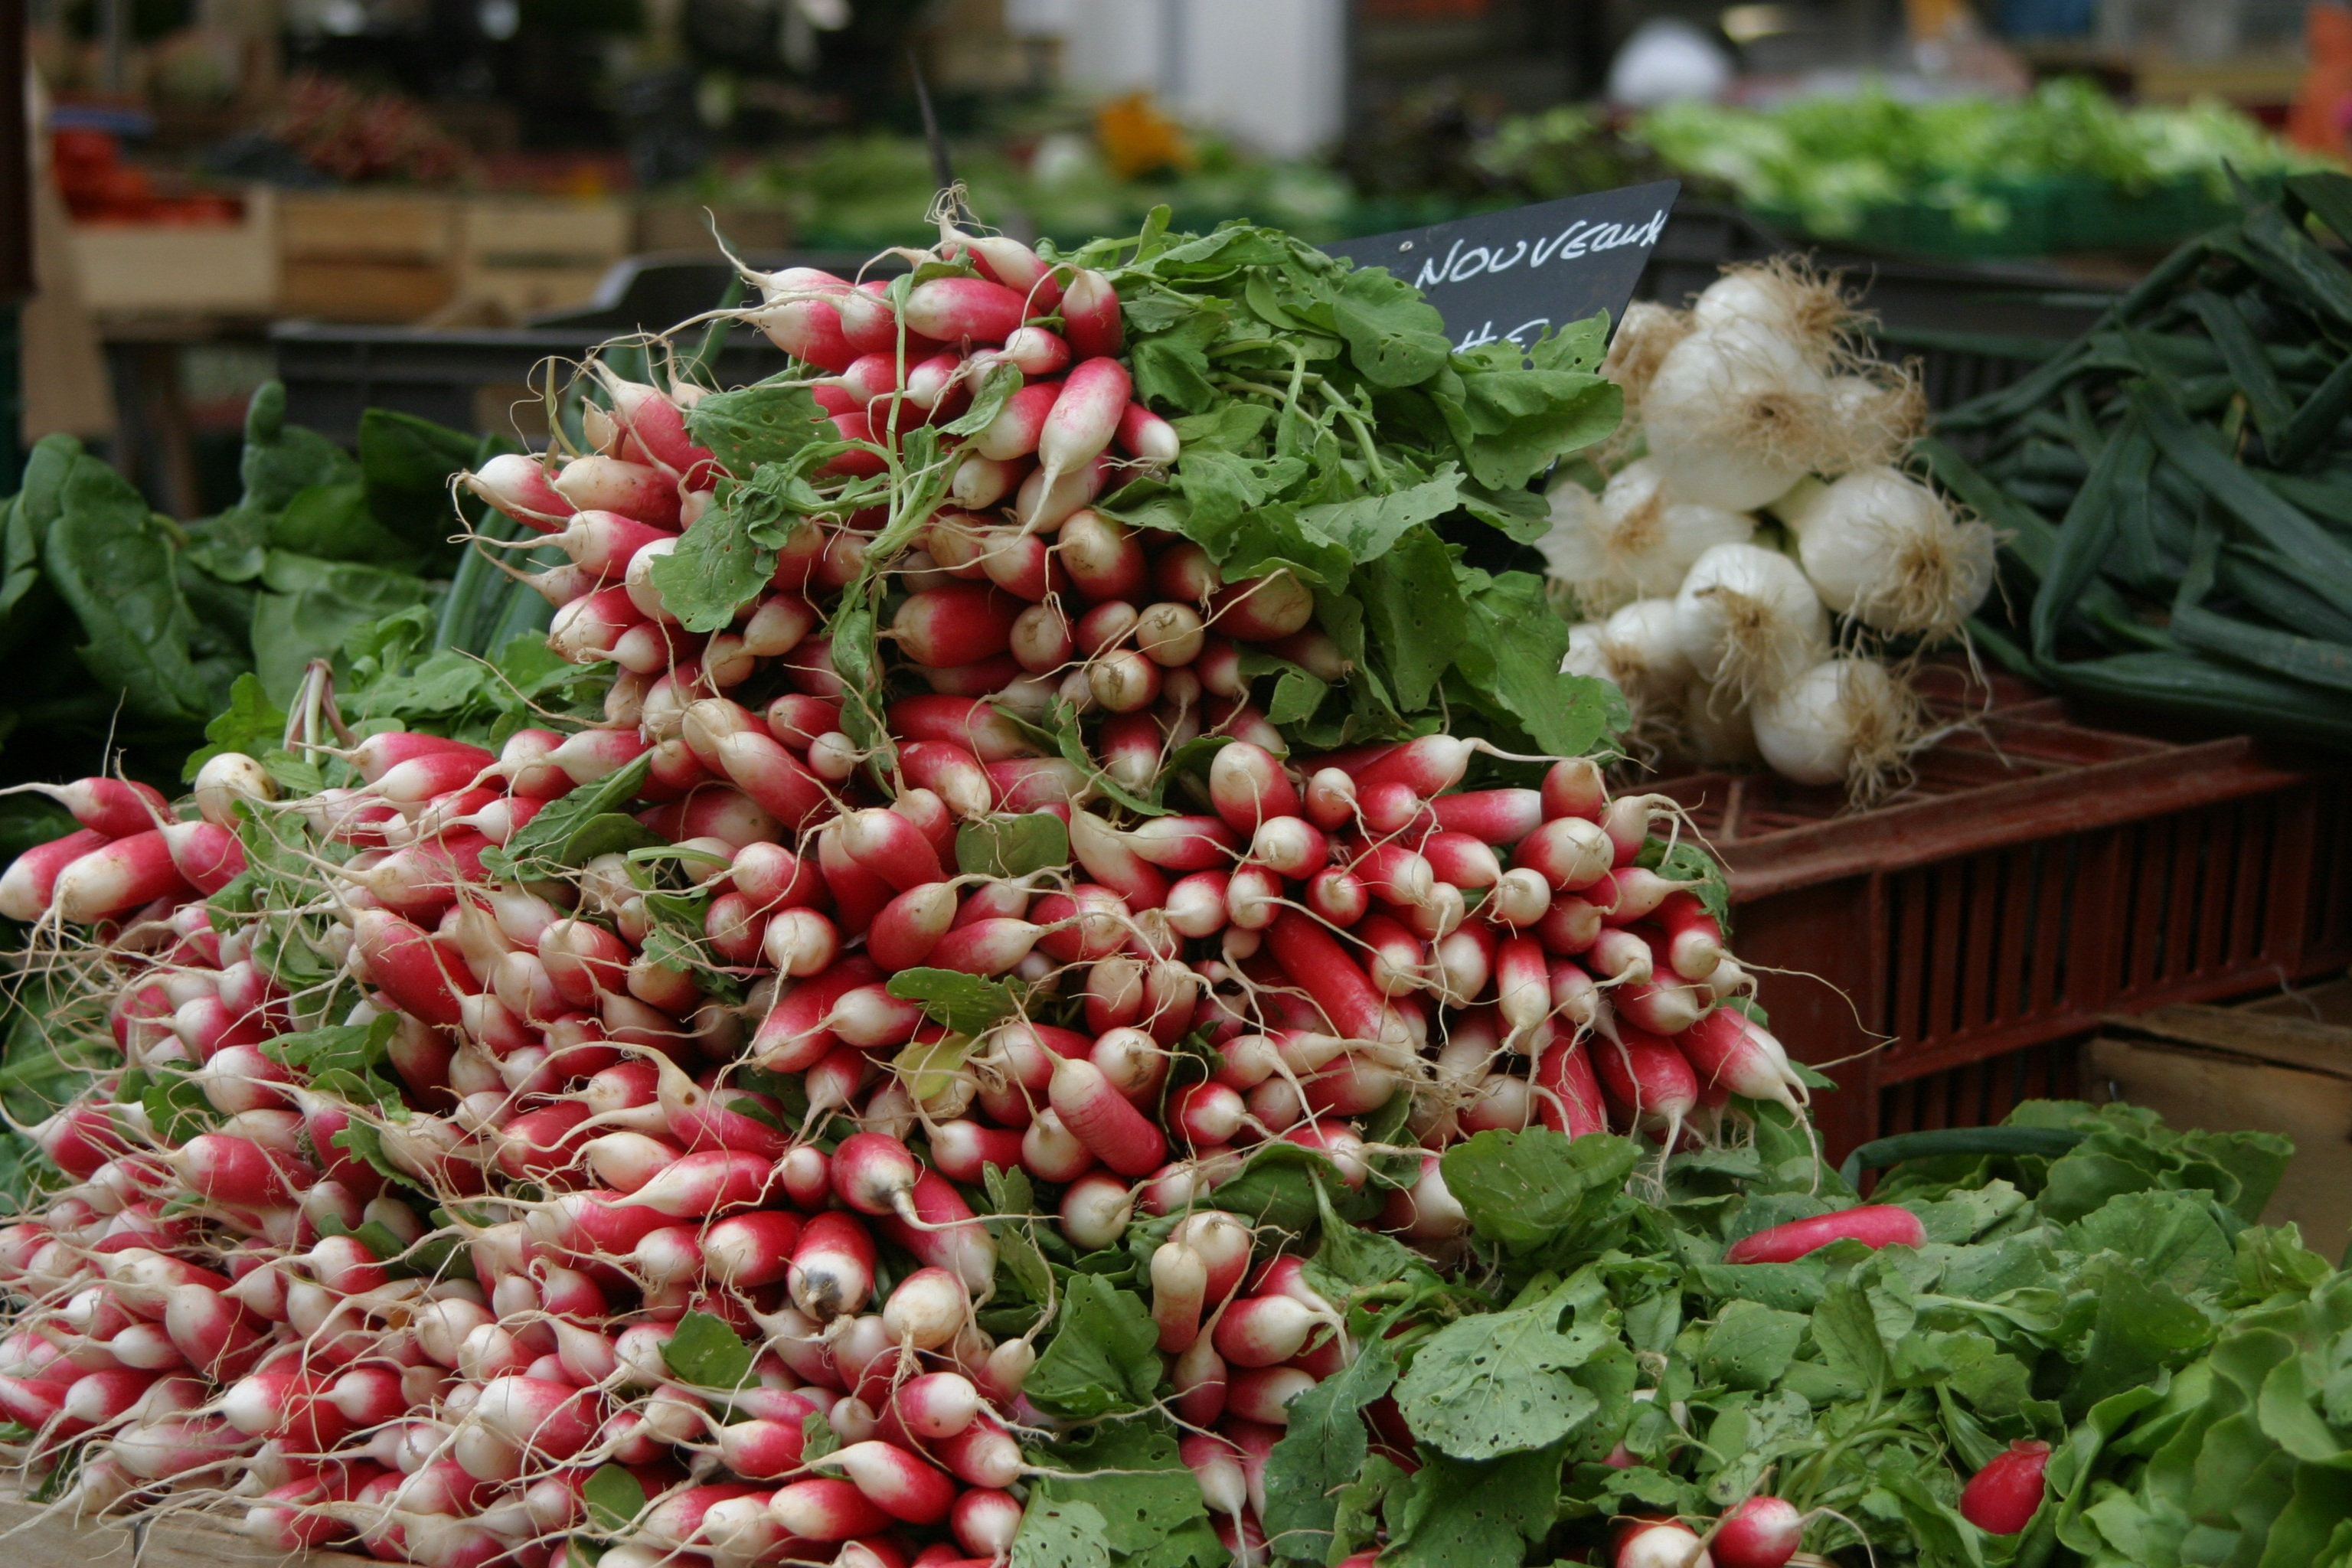 Radishes by the bunch